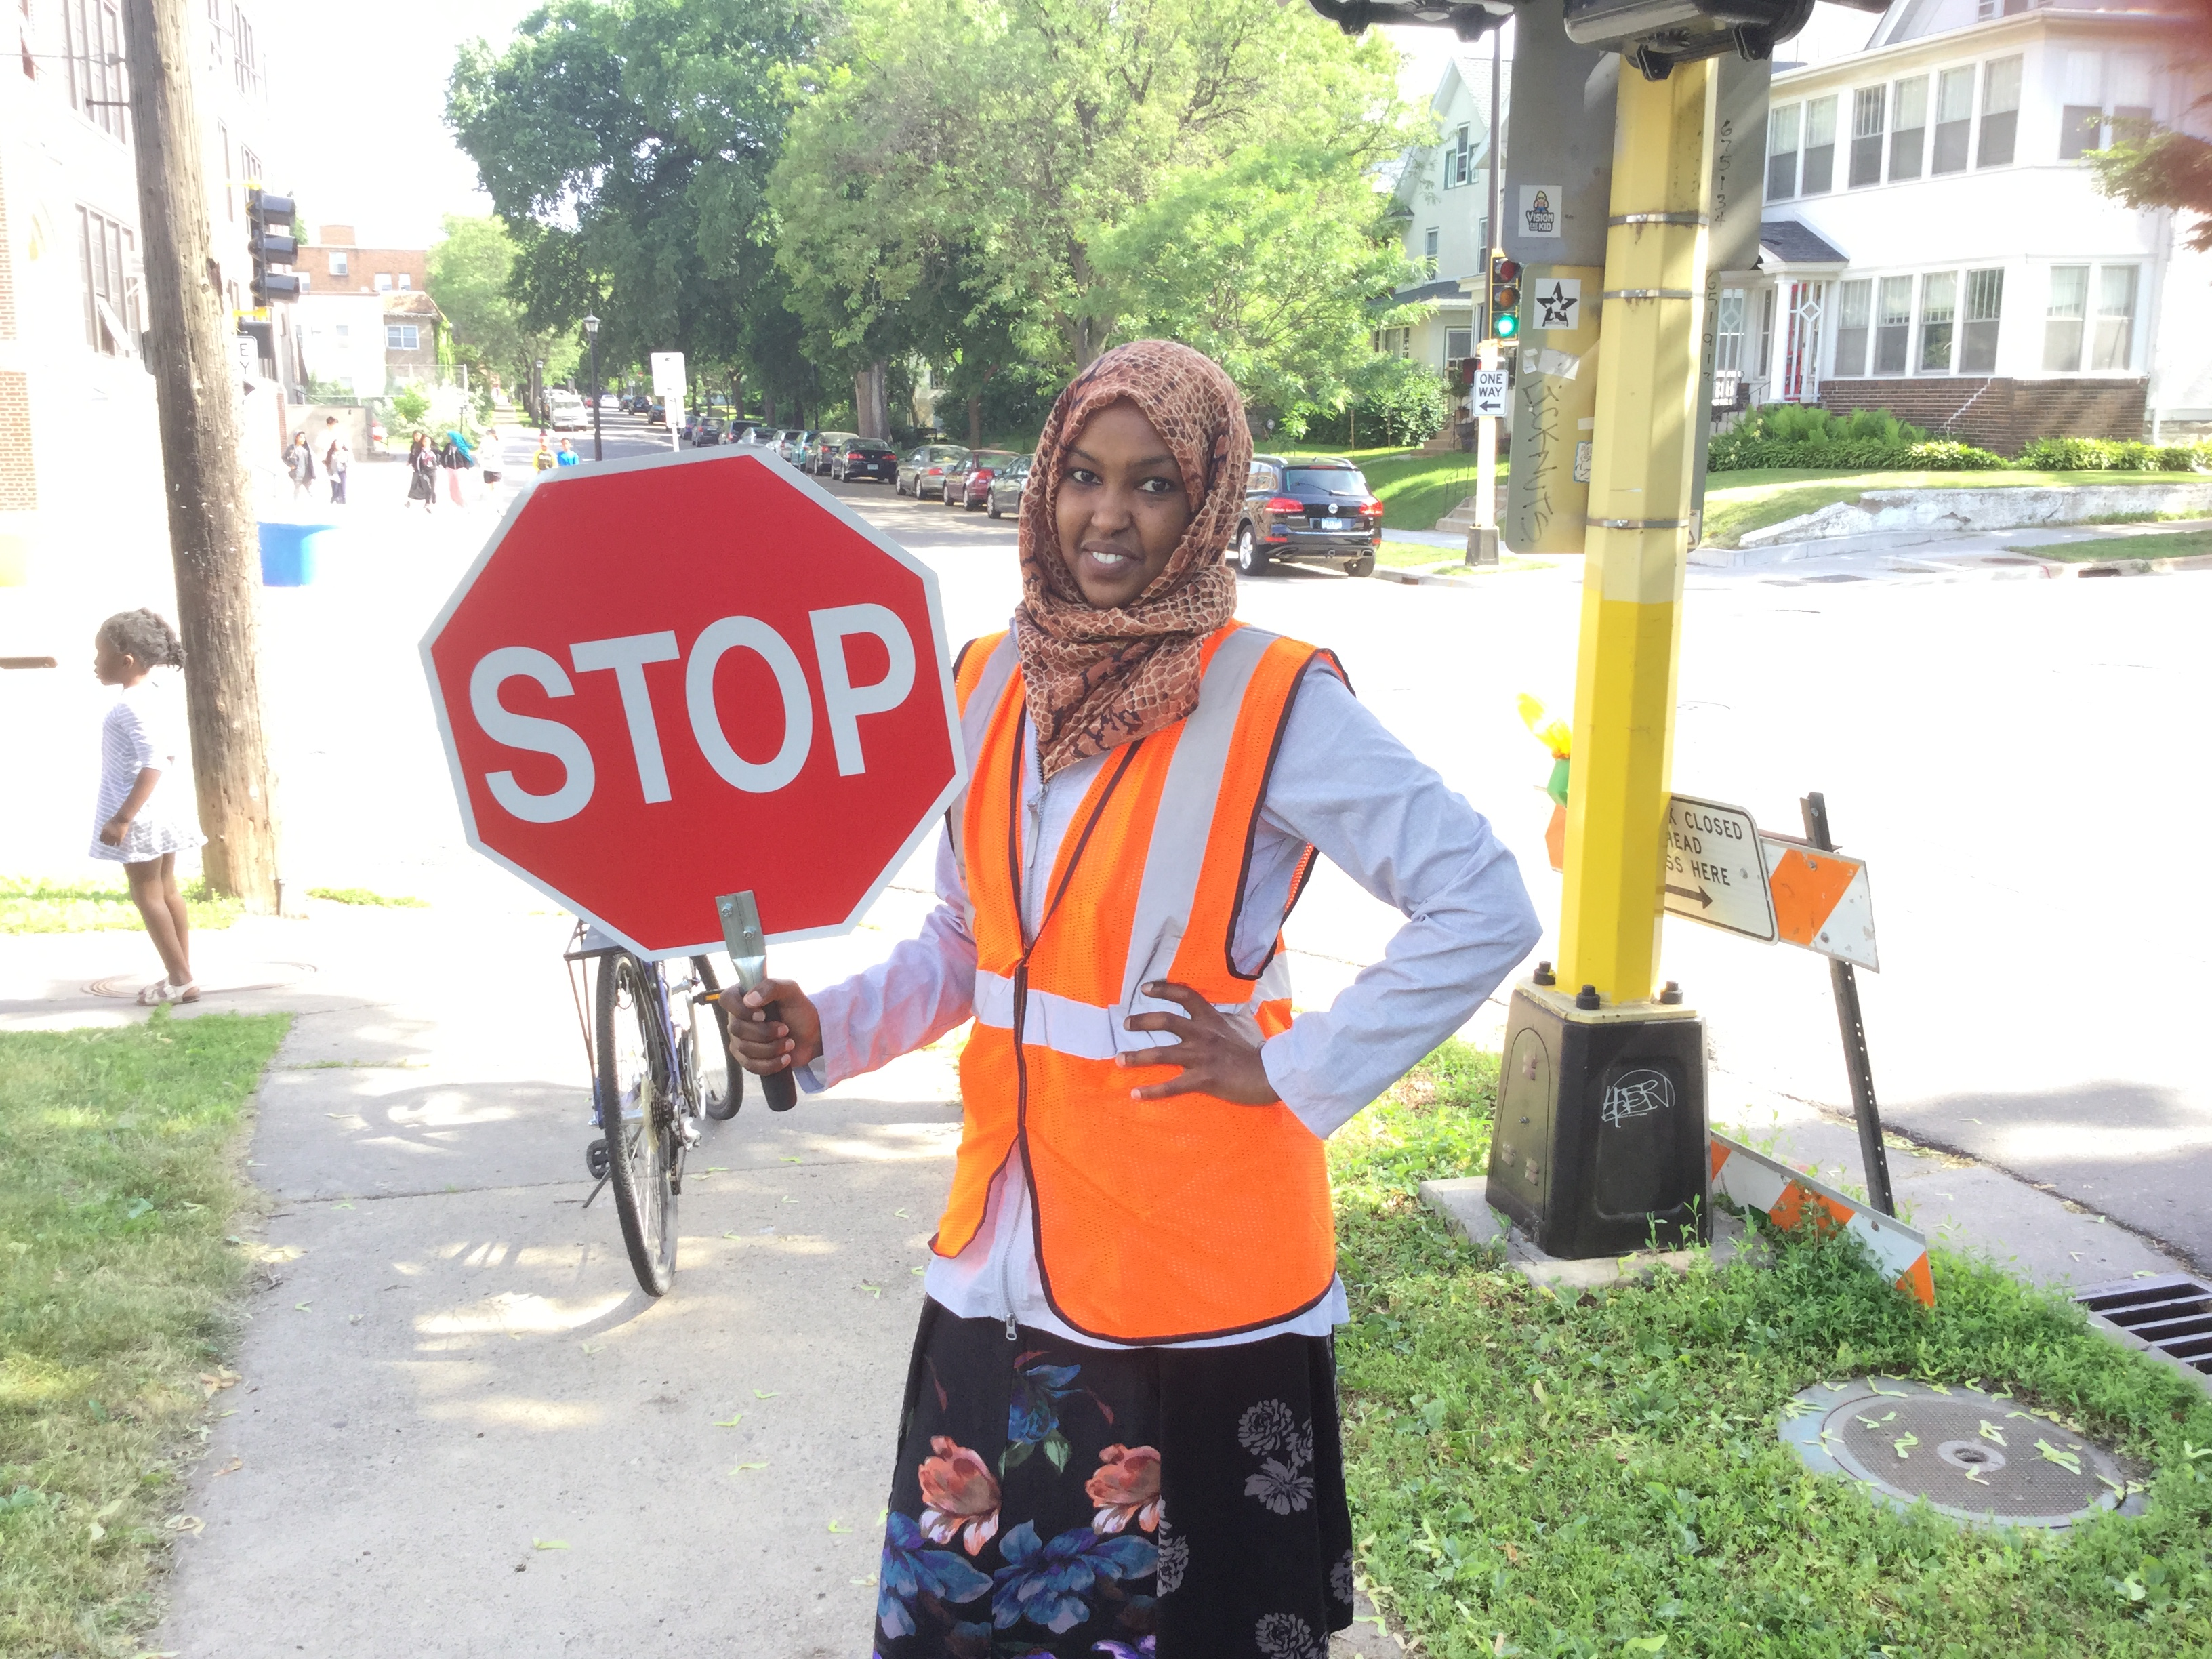 A person wearing a hijab smiling and holding a stop sign